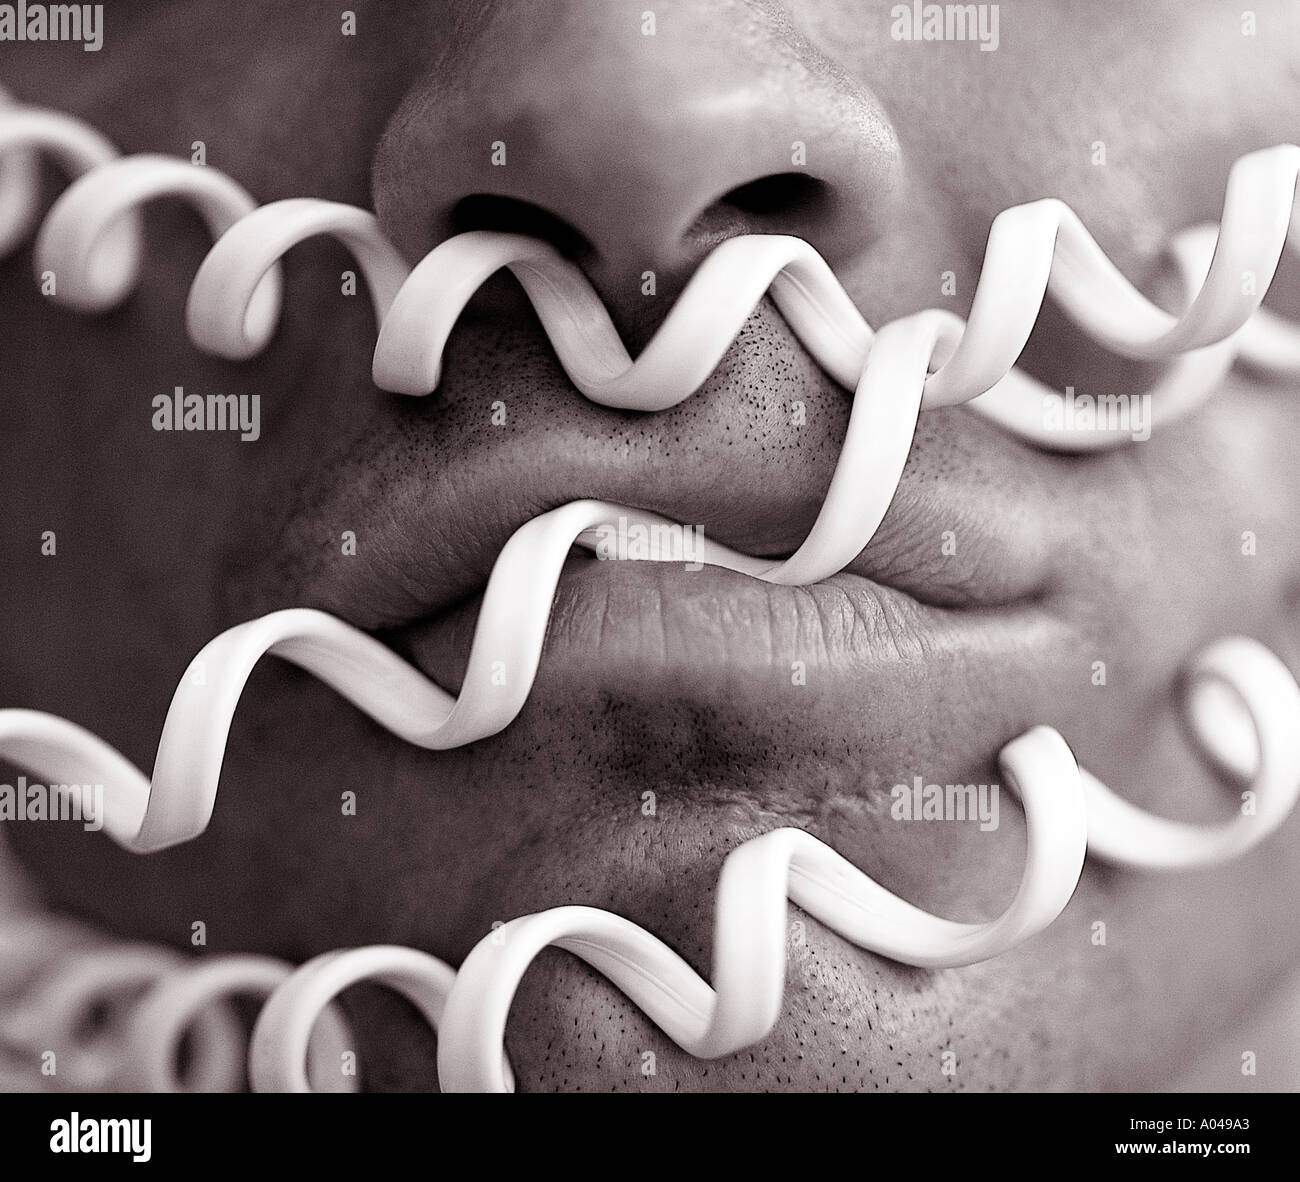 Telephone cord wrapped around a man's mouth - Stock Image